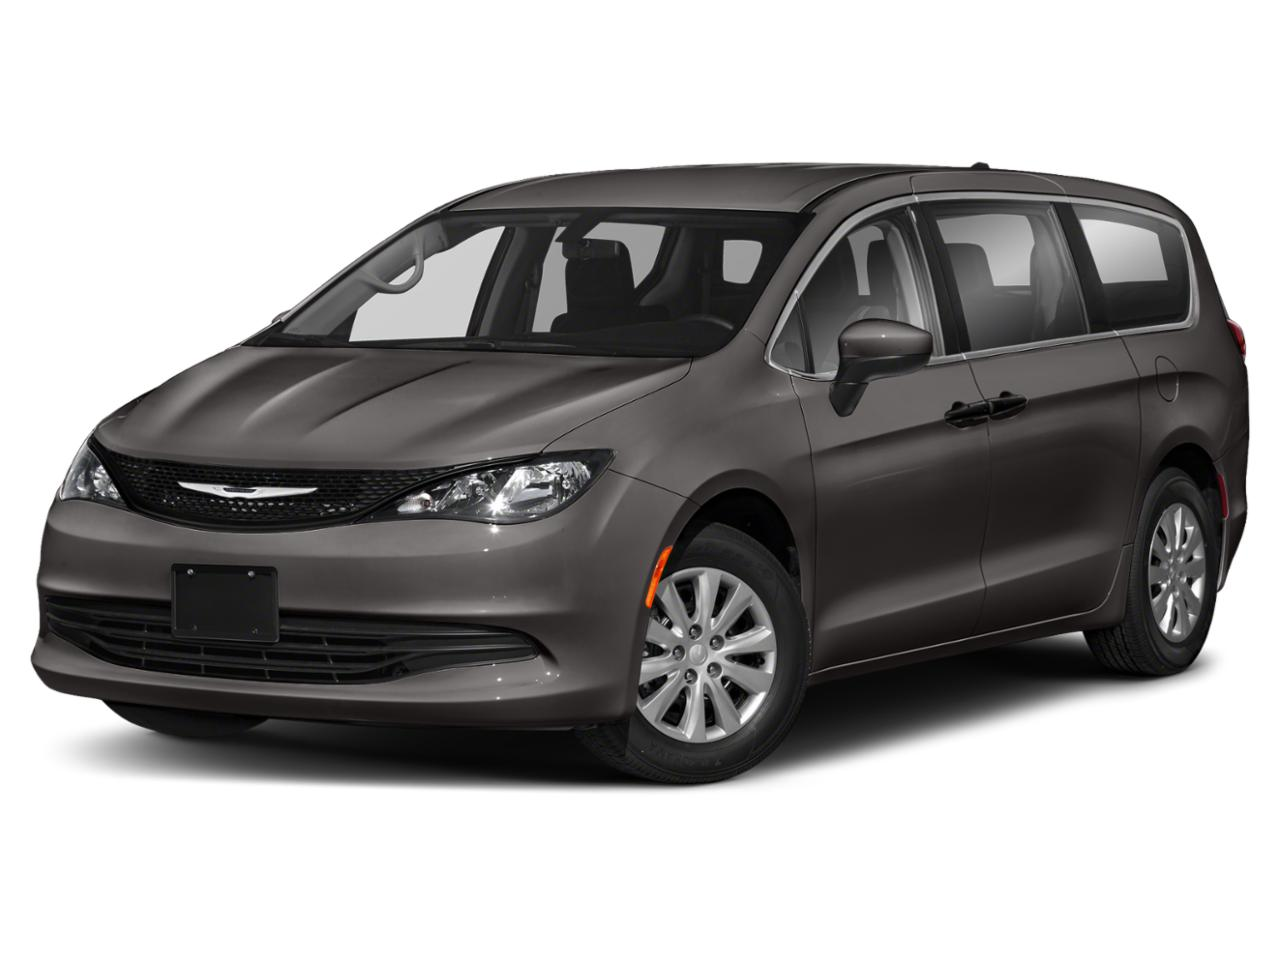 2020 Chrysler Voyager Vehicle Photo in Portland, OR 97225